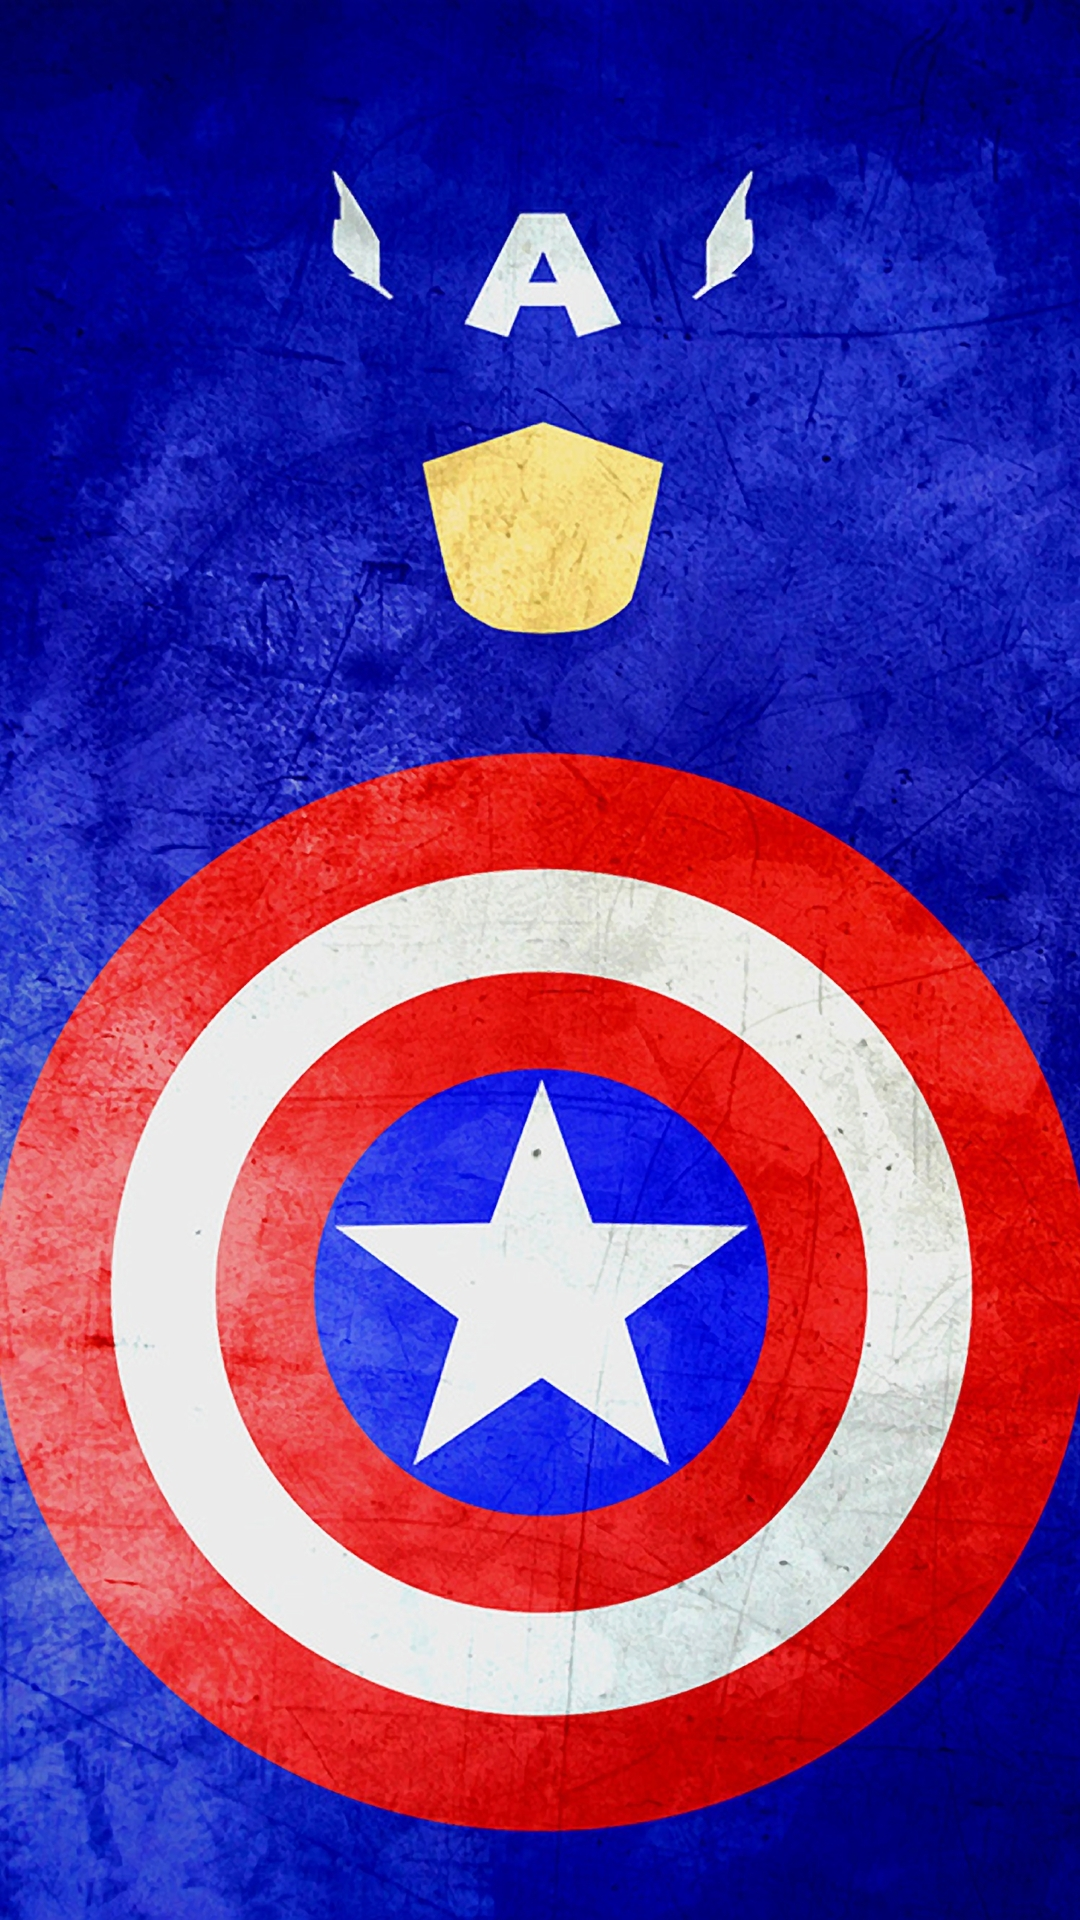 Free Download Galaxy S4 Wallpapers Wallpapers Captain America Android Wallpapers 1080x1920 For Your Desktop Mobile Tablet Explore 49 Captain America Logo Wallpaper America Pictures Wallpaper America Wallpaper Hd Captain